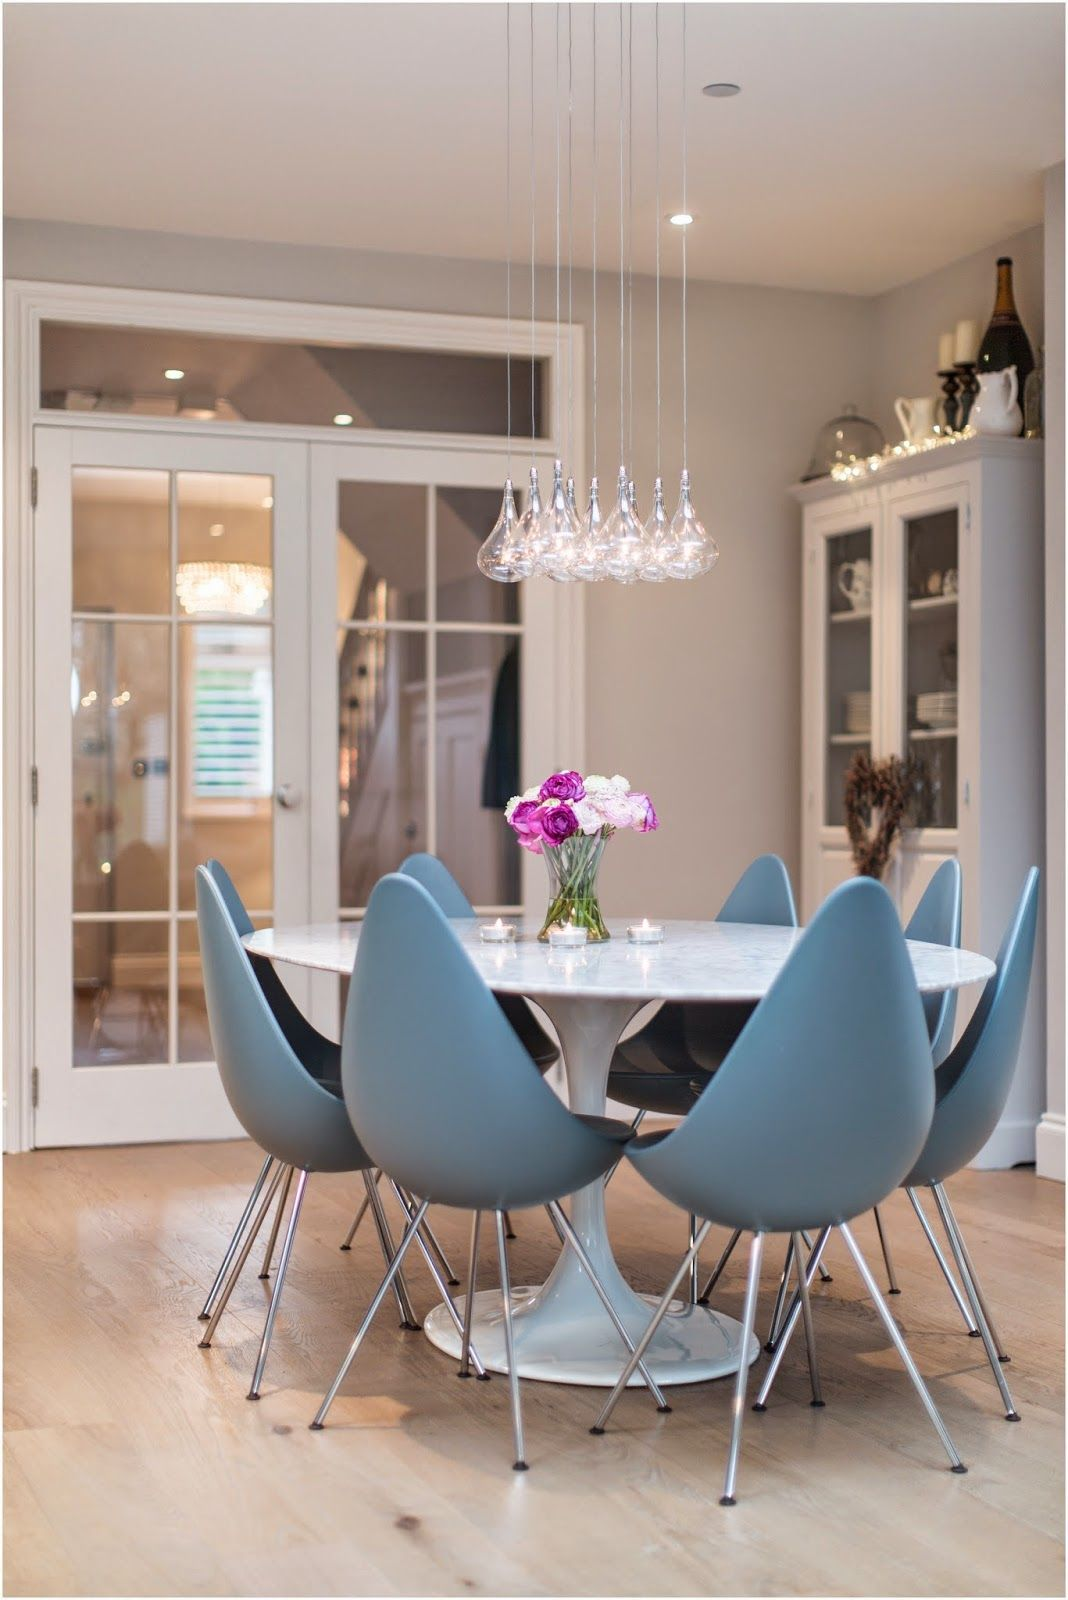 Best Hosting With Airbnb In 2019 Dinning Table Design Dining 400 x 300